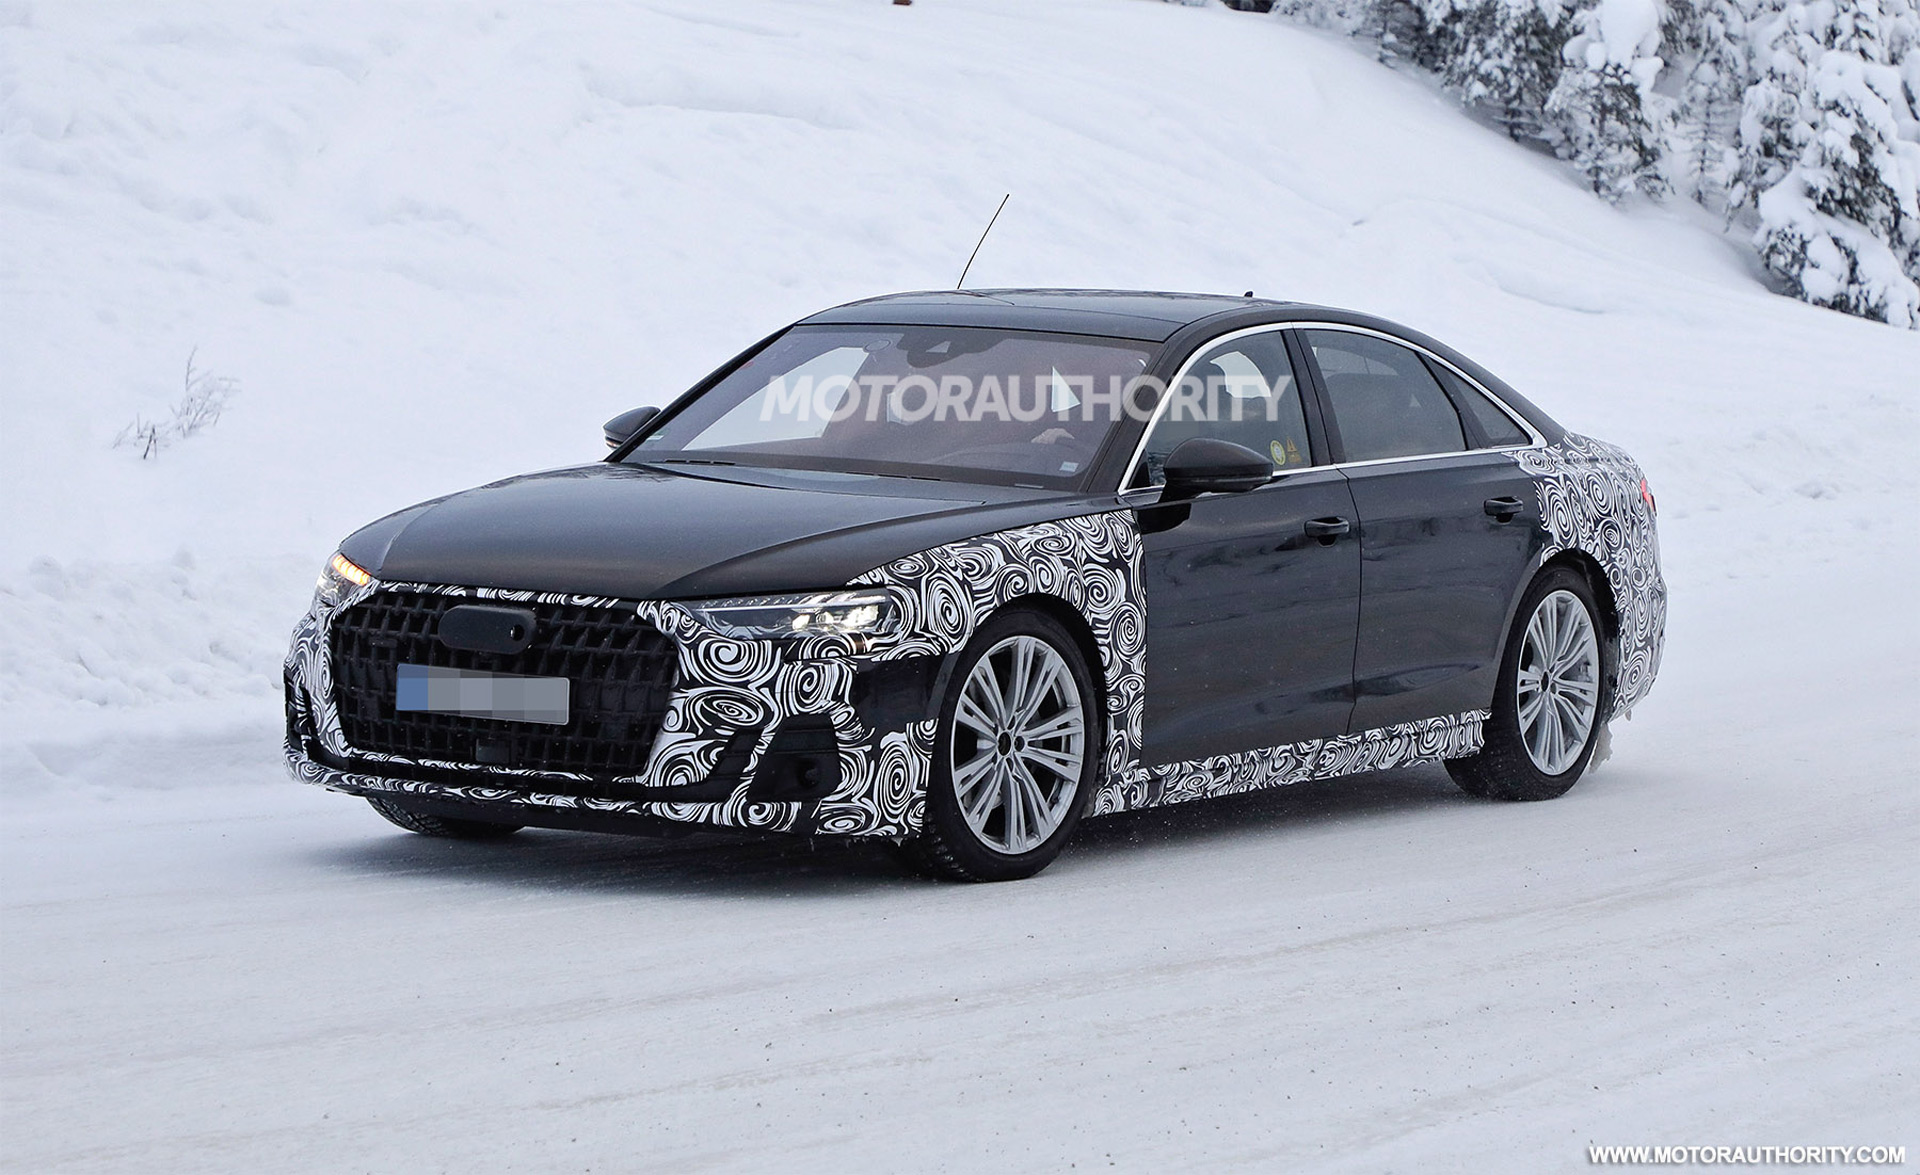 2022 Audi A8 spy shots: Mid-life facelift may see Maybach rival introduced